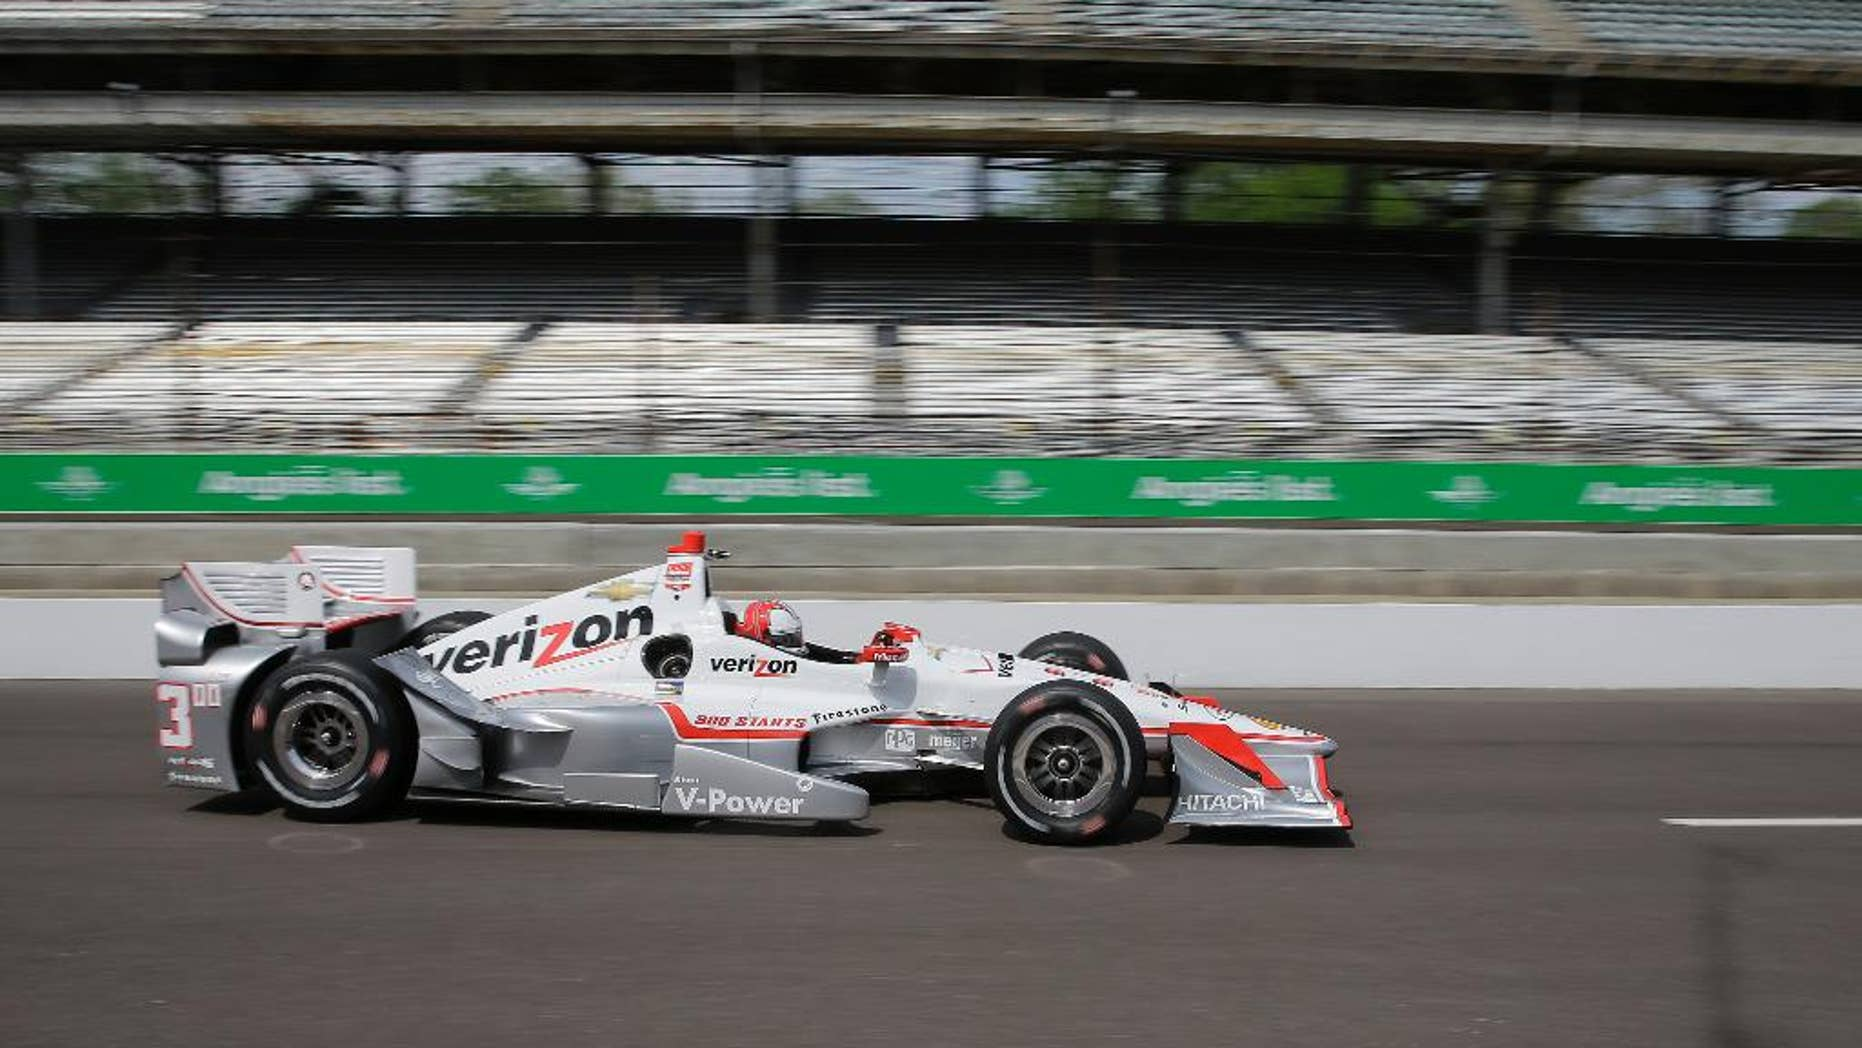 Helio Castroneves, of Brazil, drives down pit road during practice for the Grand Prix of Indianapolis auto race at the Indianapolis Motor Speedway in Indianapolis, Friday, May 8, 2015.  (AP Photo/Darron Cummings)